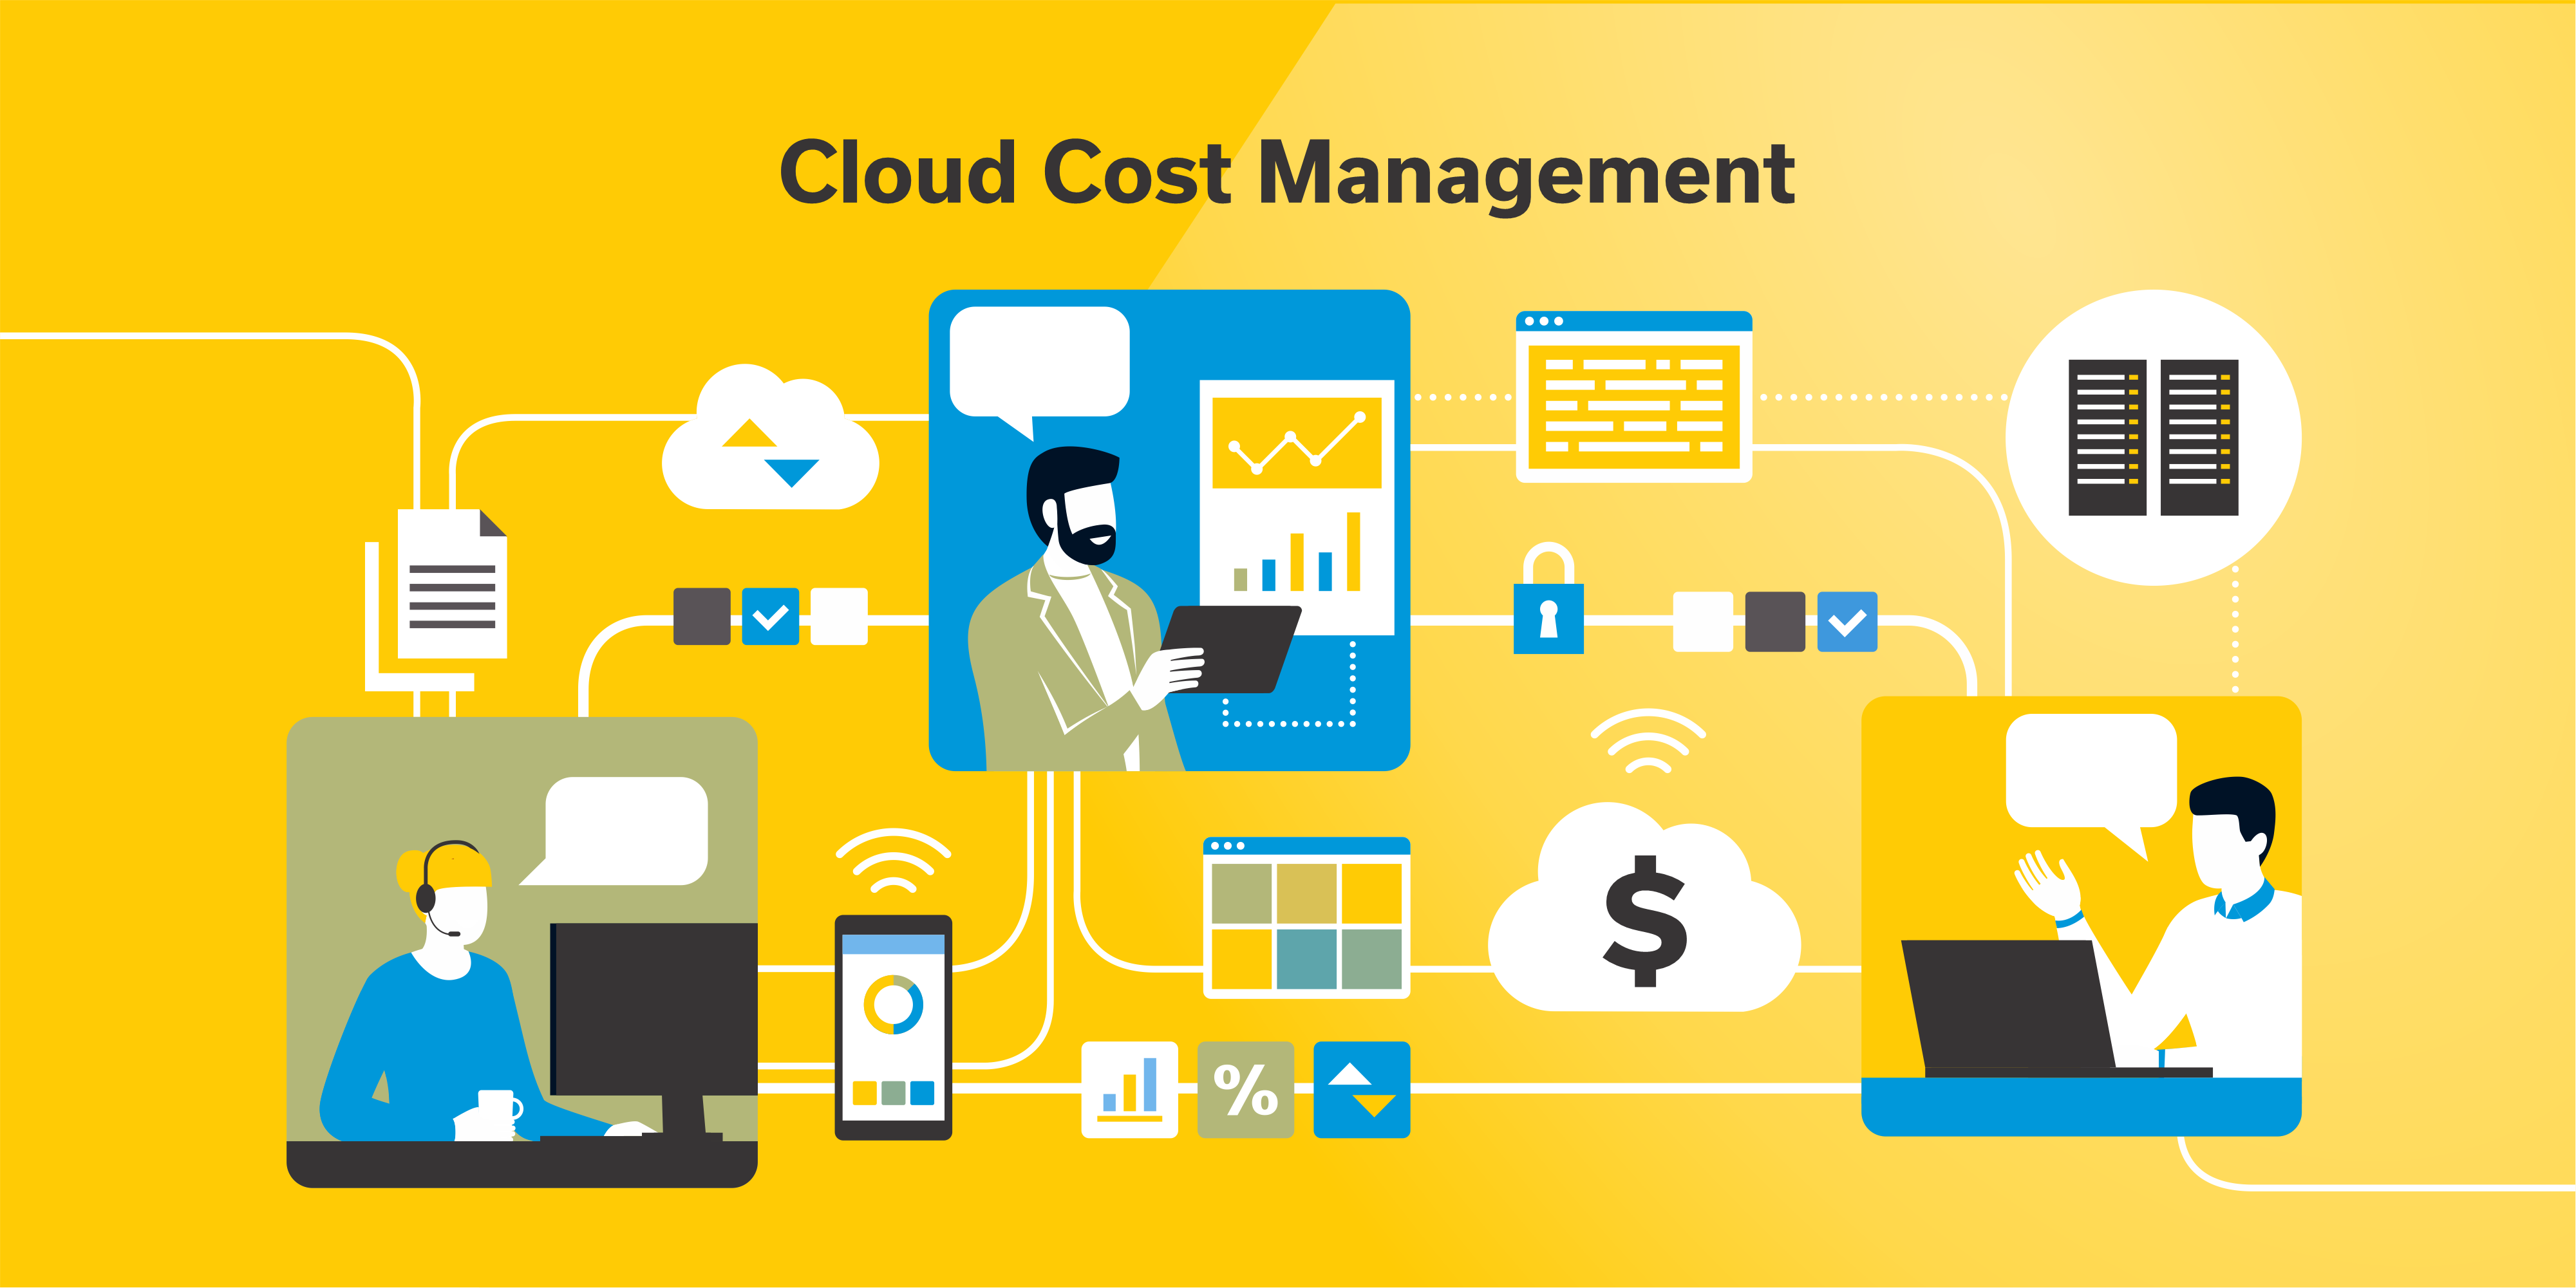 Cloud Cost Management: 5 Best Practices to Consider